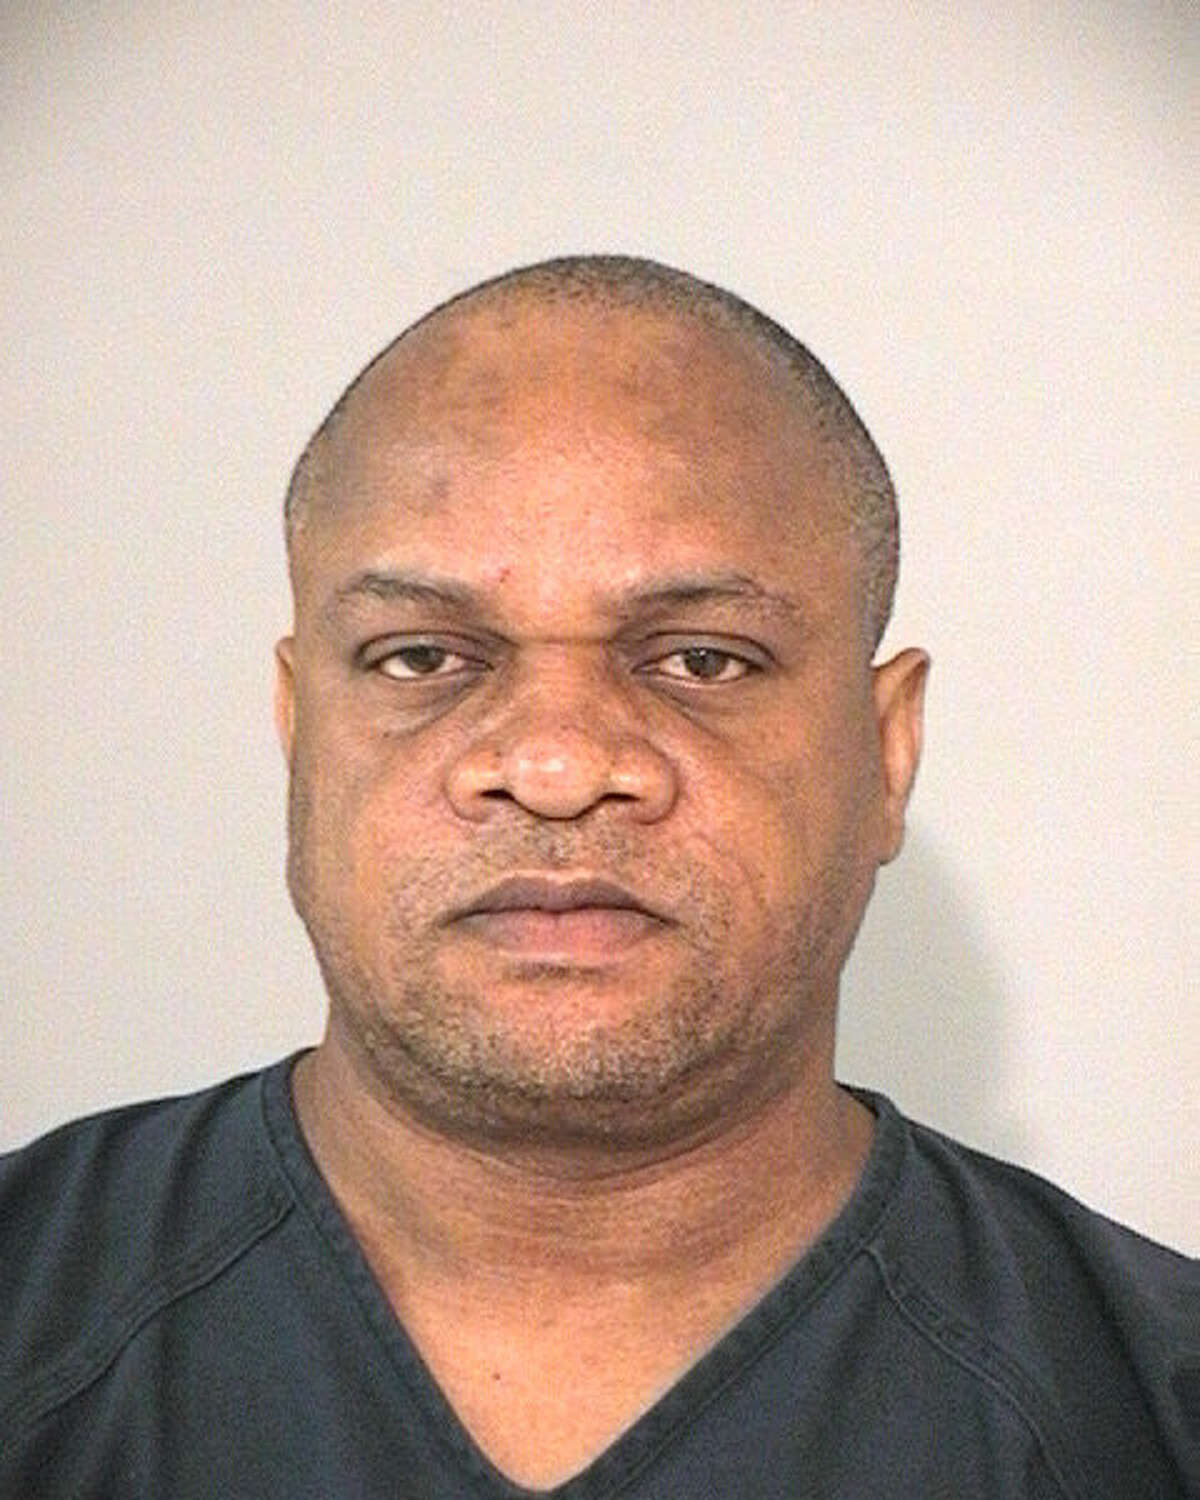 Osa Alohaneke, 56, has been convicted of murder in the death of his fiancee in 2015 in the Mission Bend area.